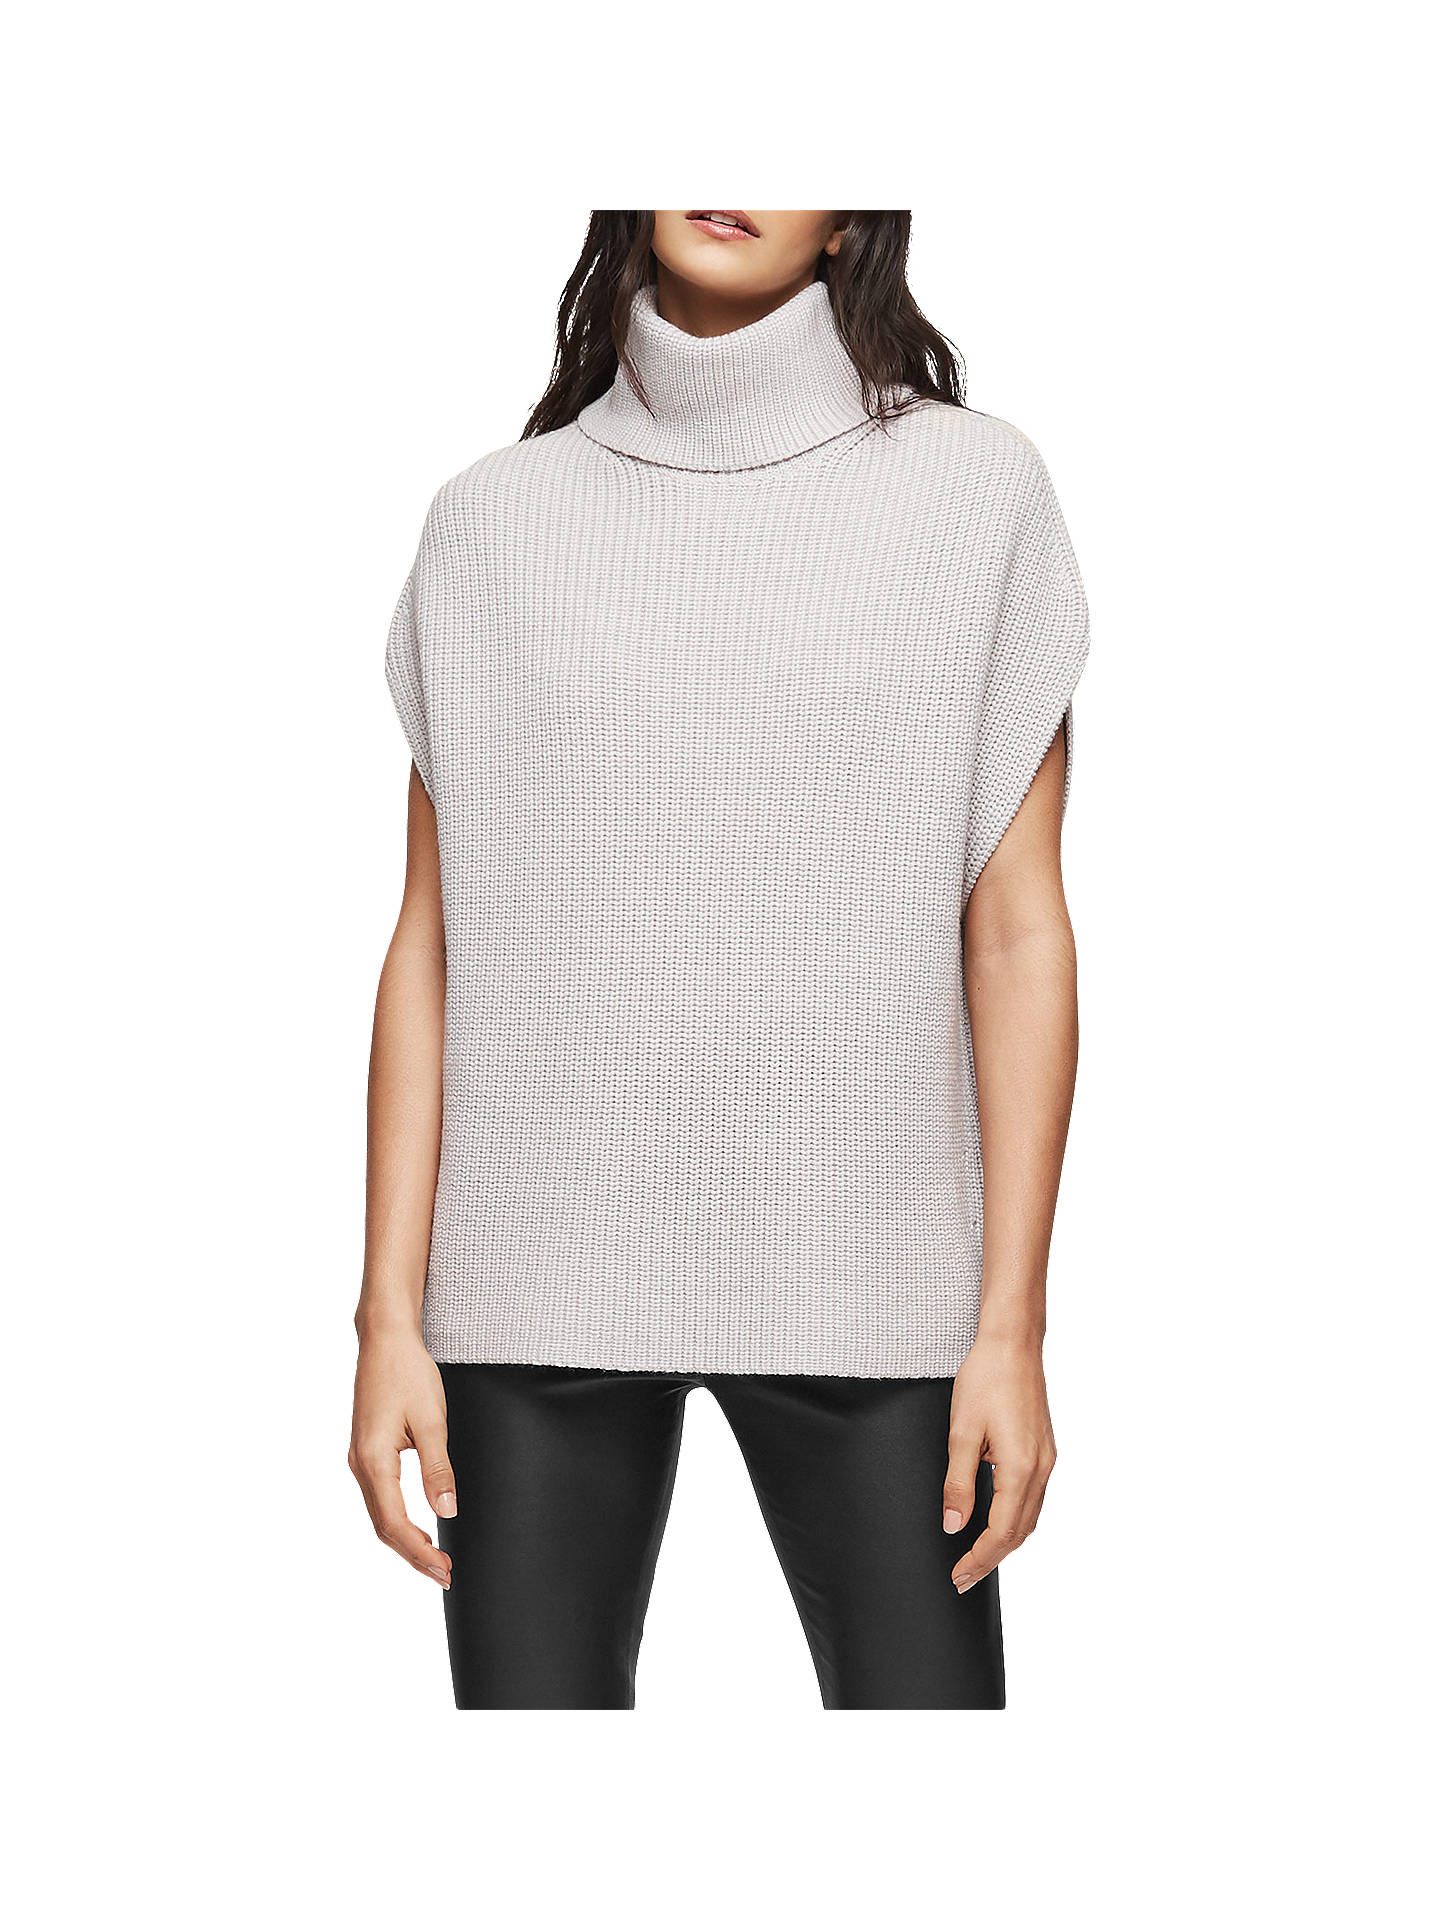 BuyReiss Eve Sleeveless Wool Jumper, Grey, XS Online at johnlewis.com